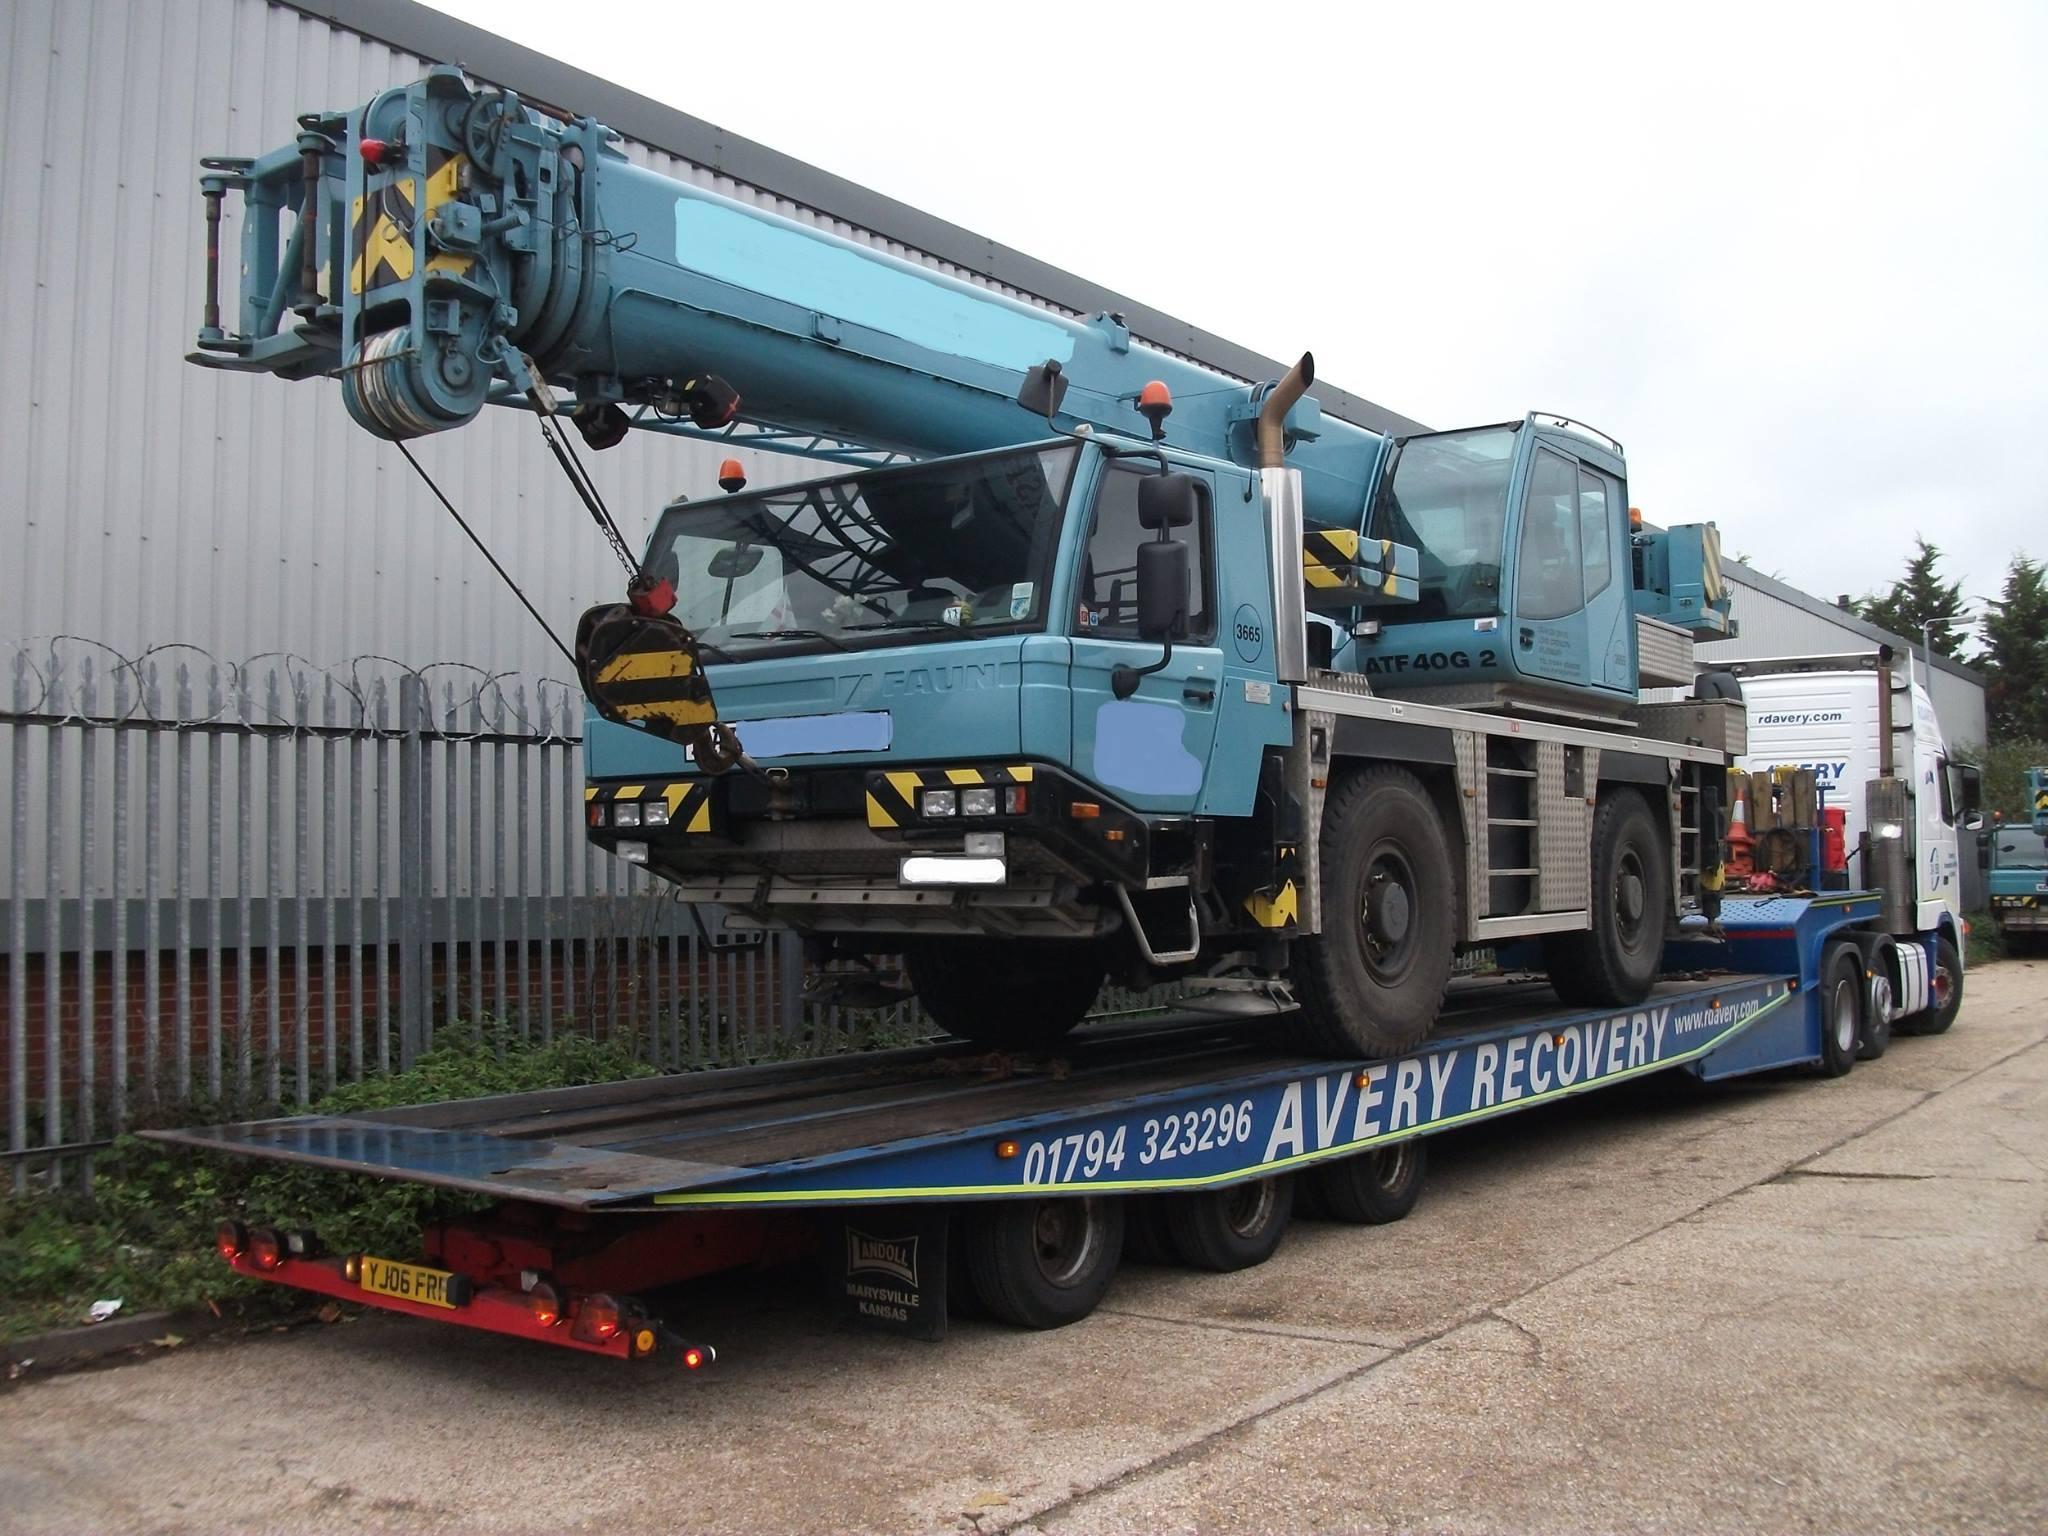 Heavy Vehicle Recovery - We regularly recover heavy goods vehicles including lorries, plant, buses and coaches from road or off-road situations.